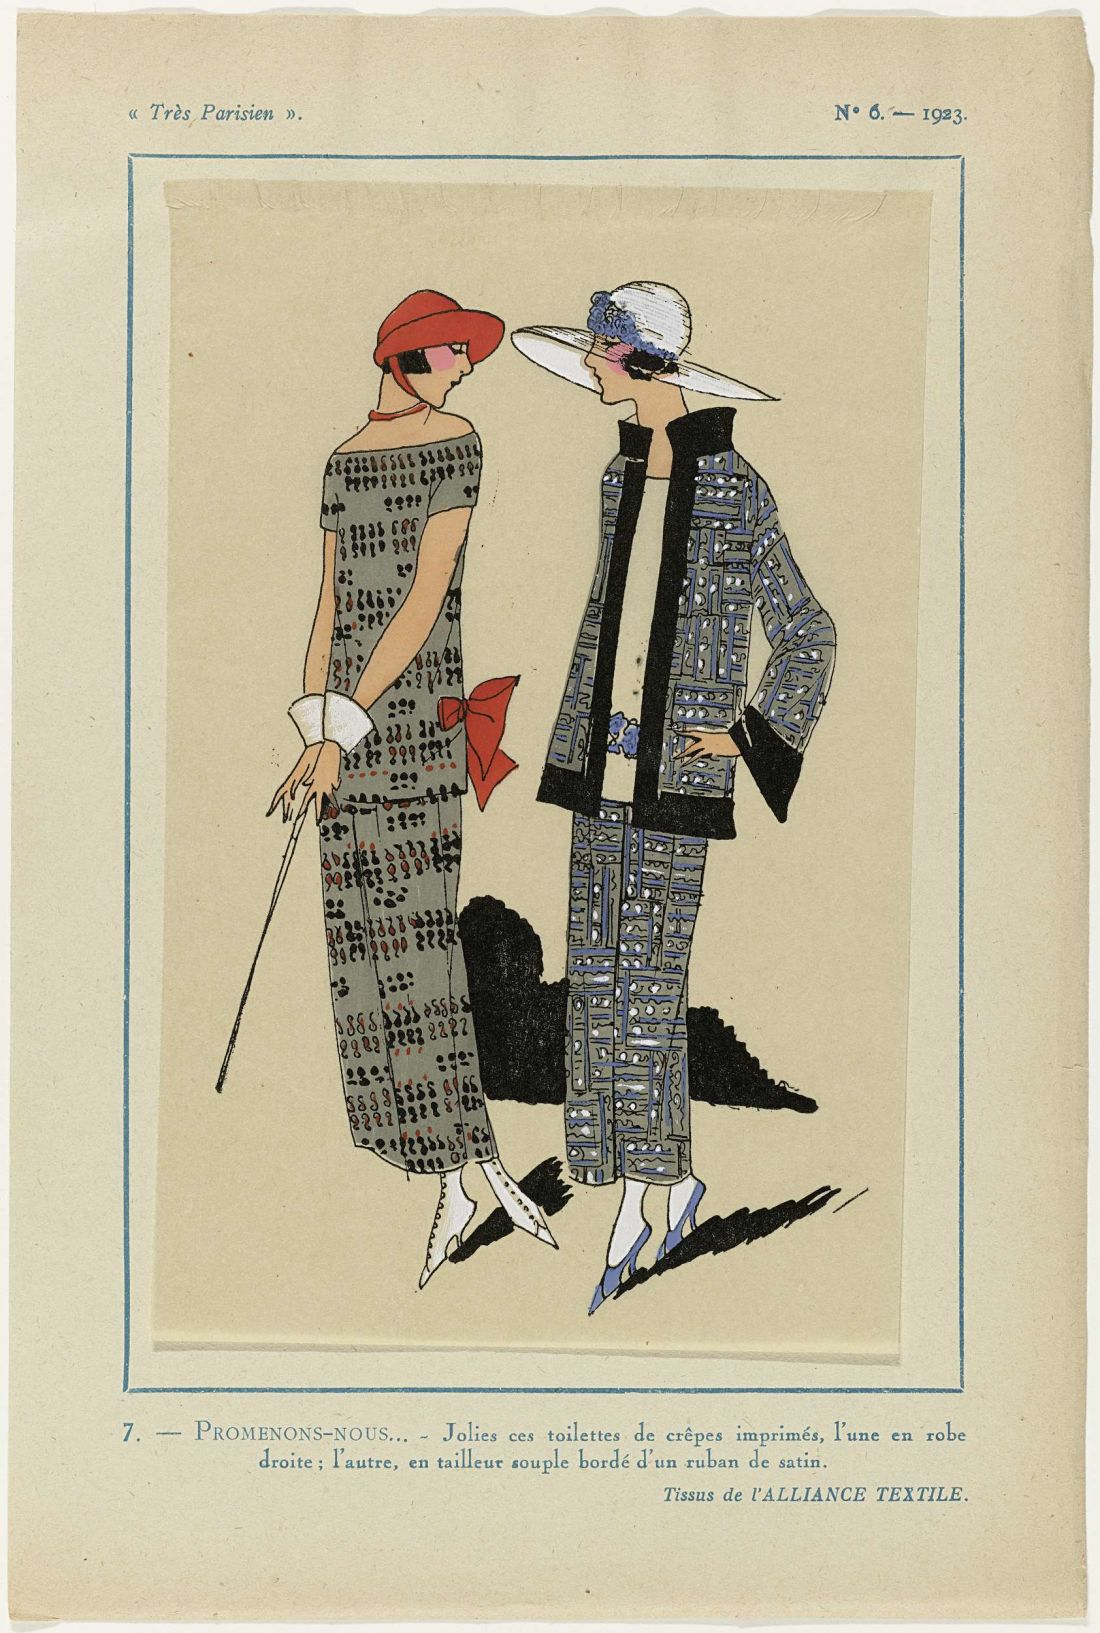 a page from a fashion magazine, with a stylised drawing of a woman wearing a dress and another woman wearing what looks like a silk patterned suit.